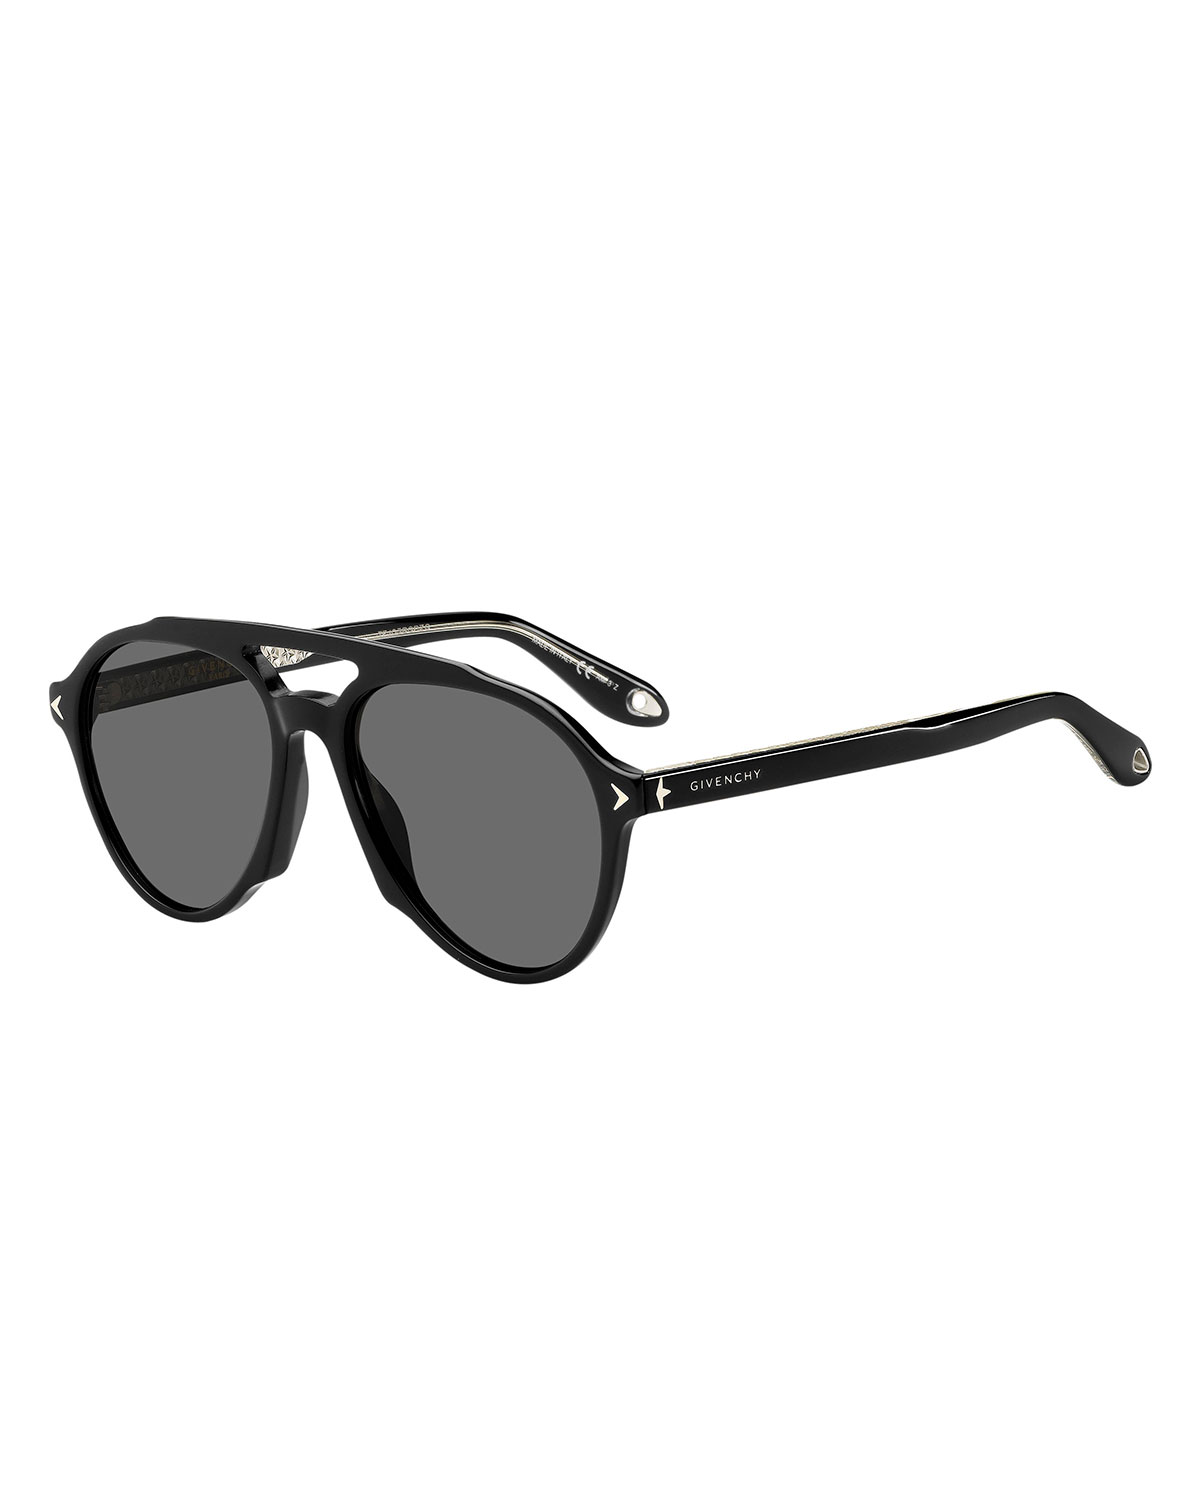 62f41b036c Quick Look. Givenchy · Acetate Aviator Sunglasses